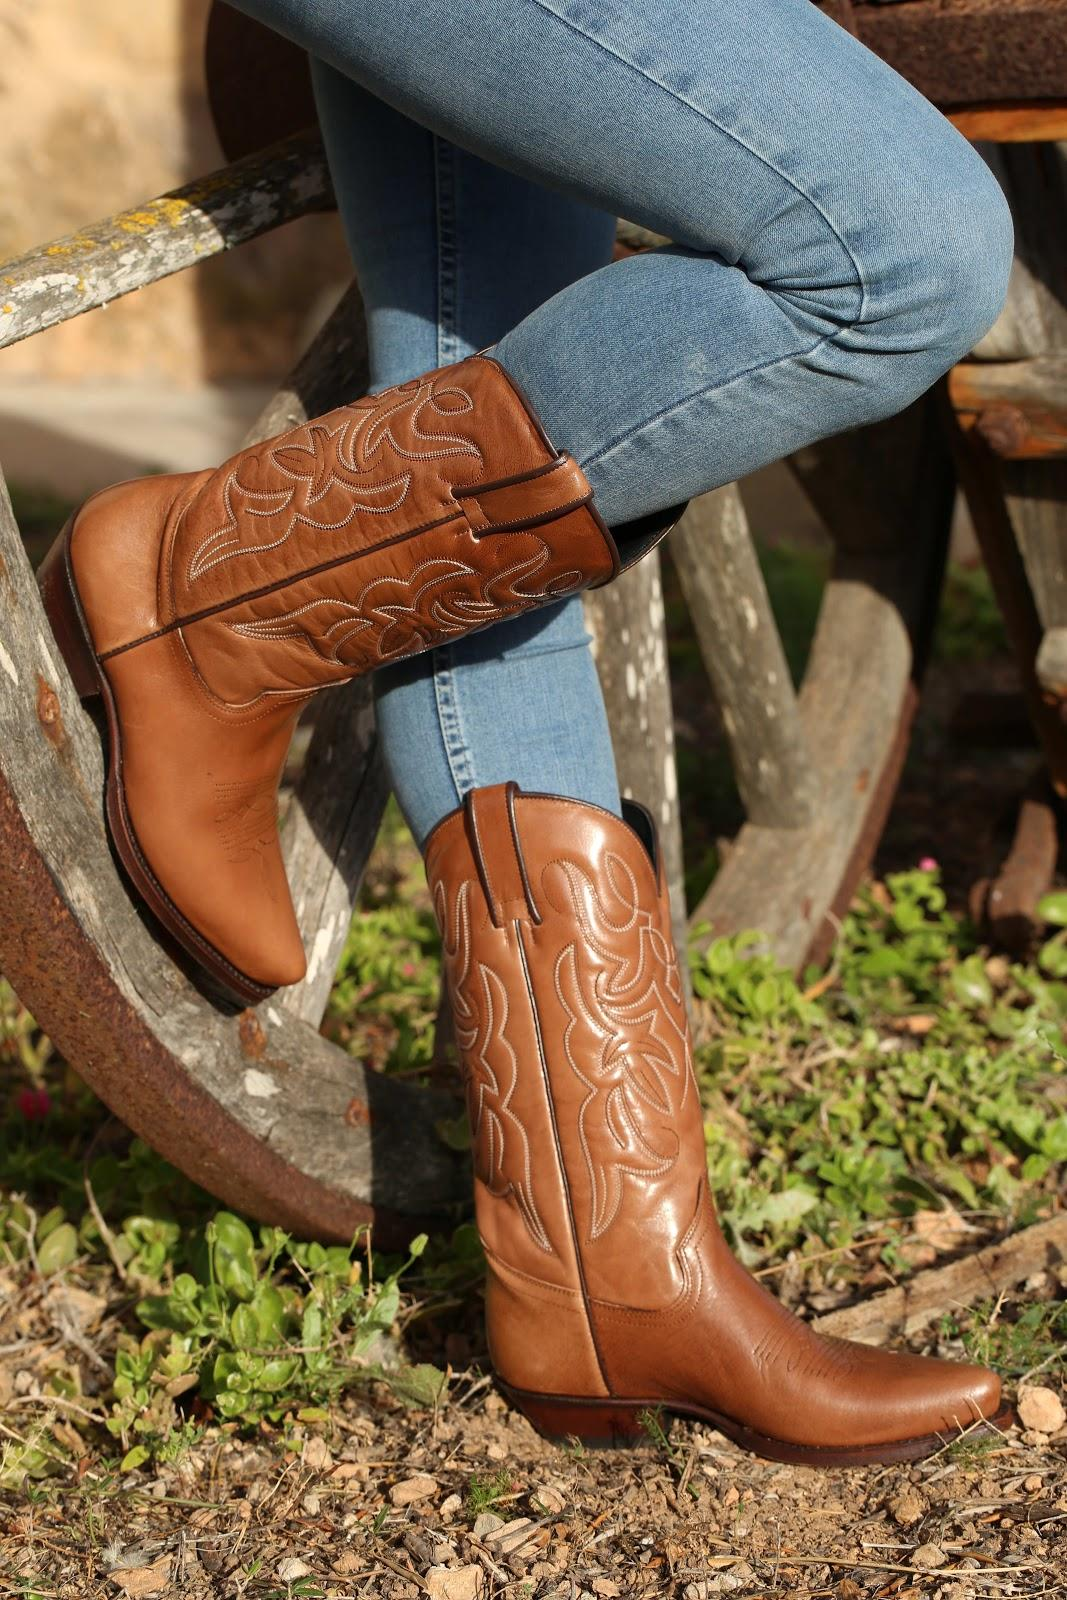 Types of country boots